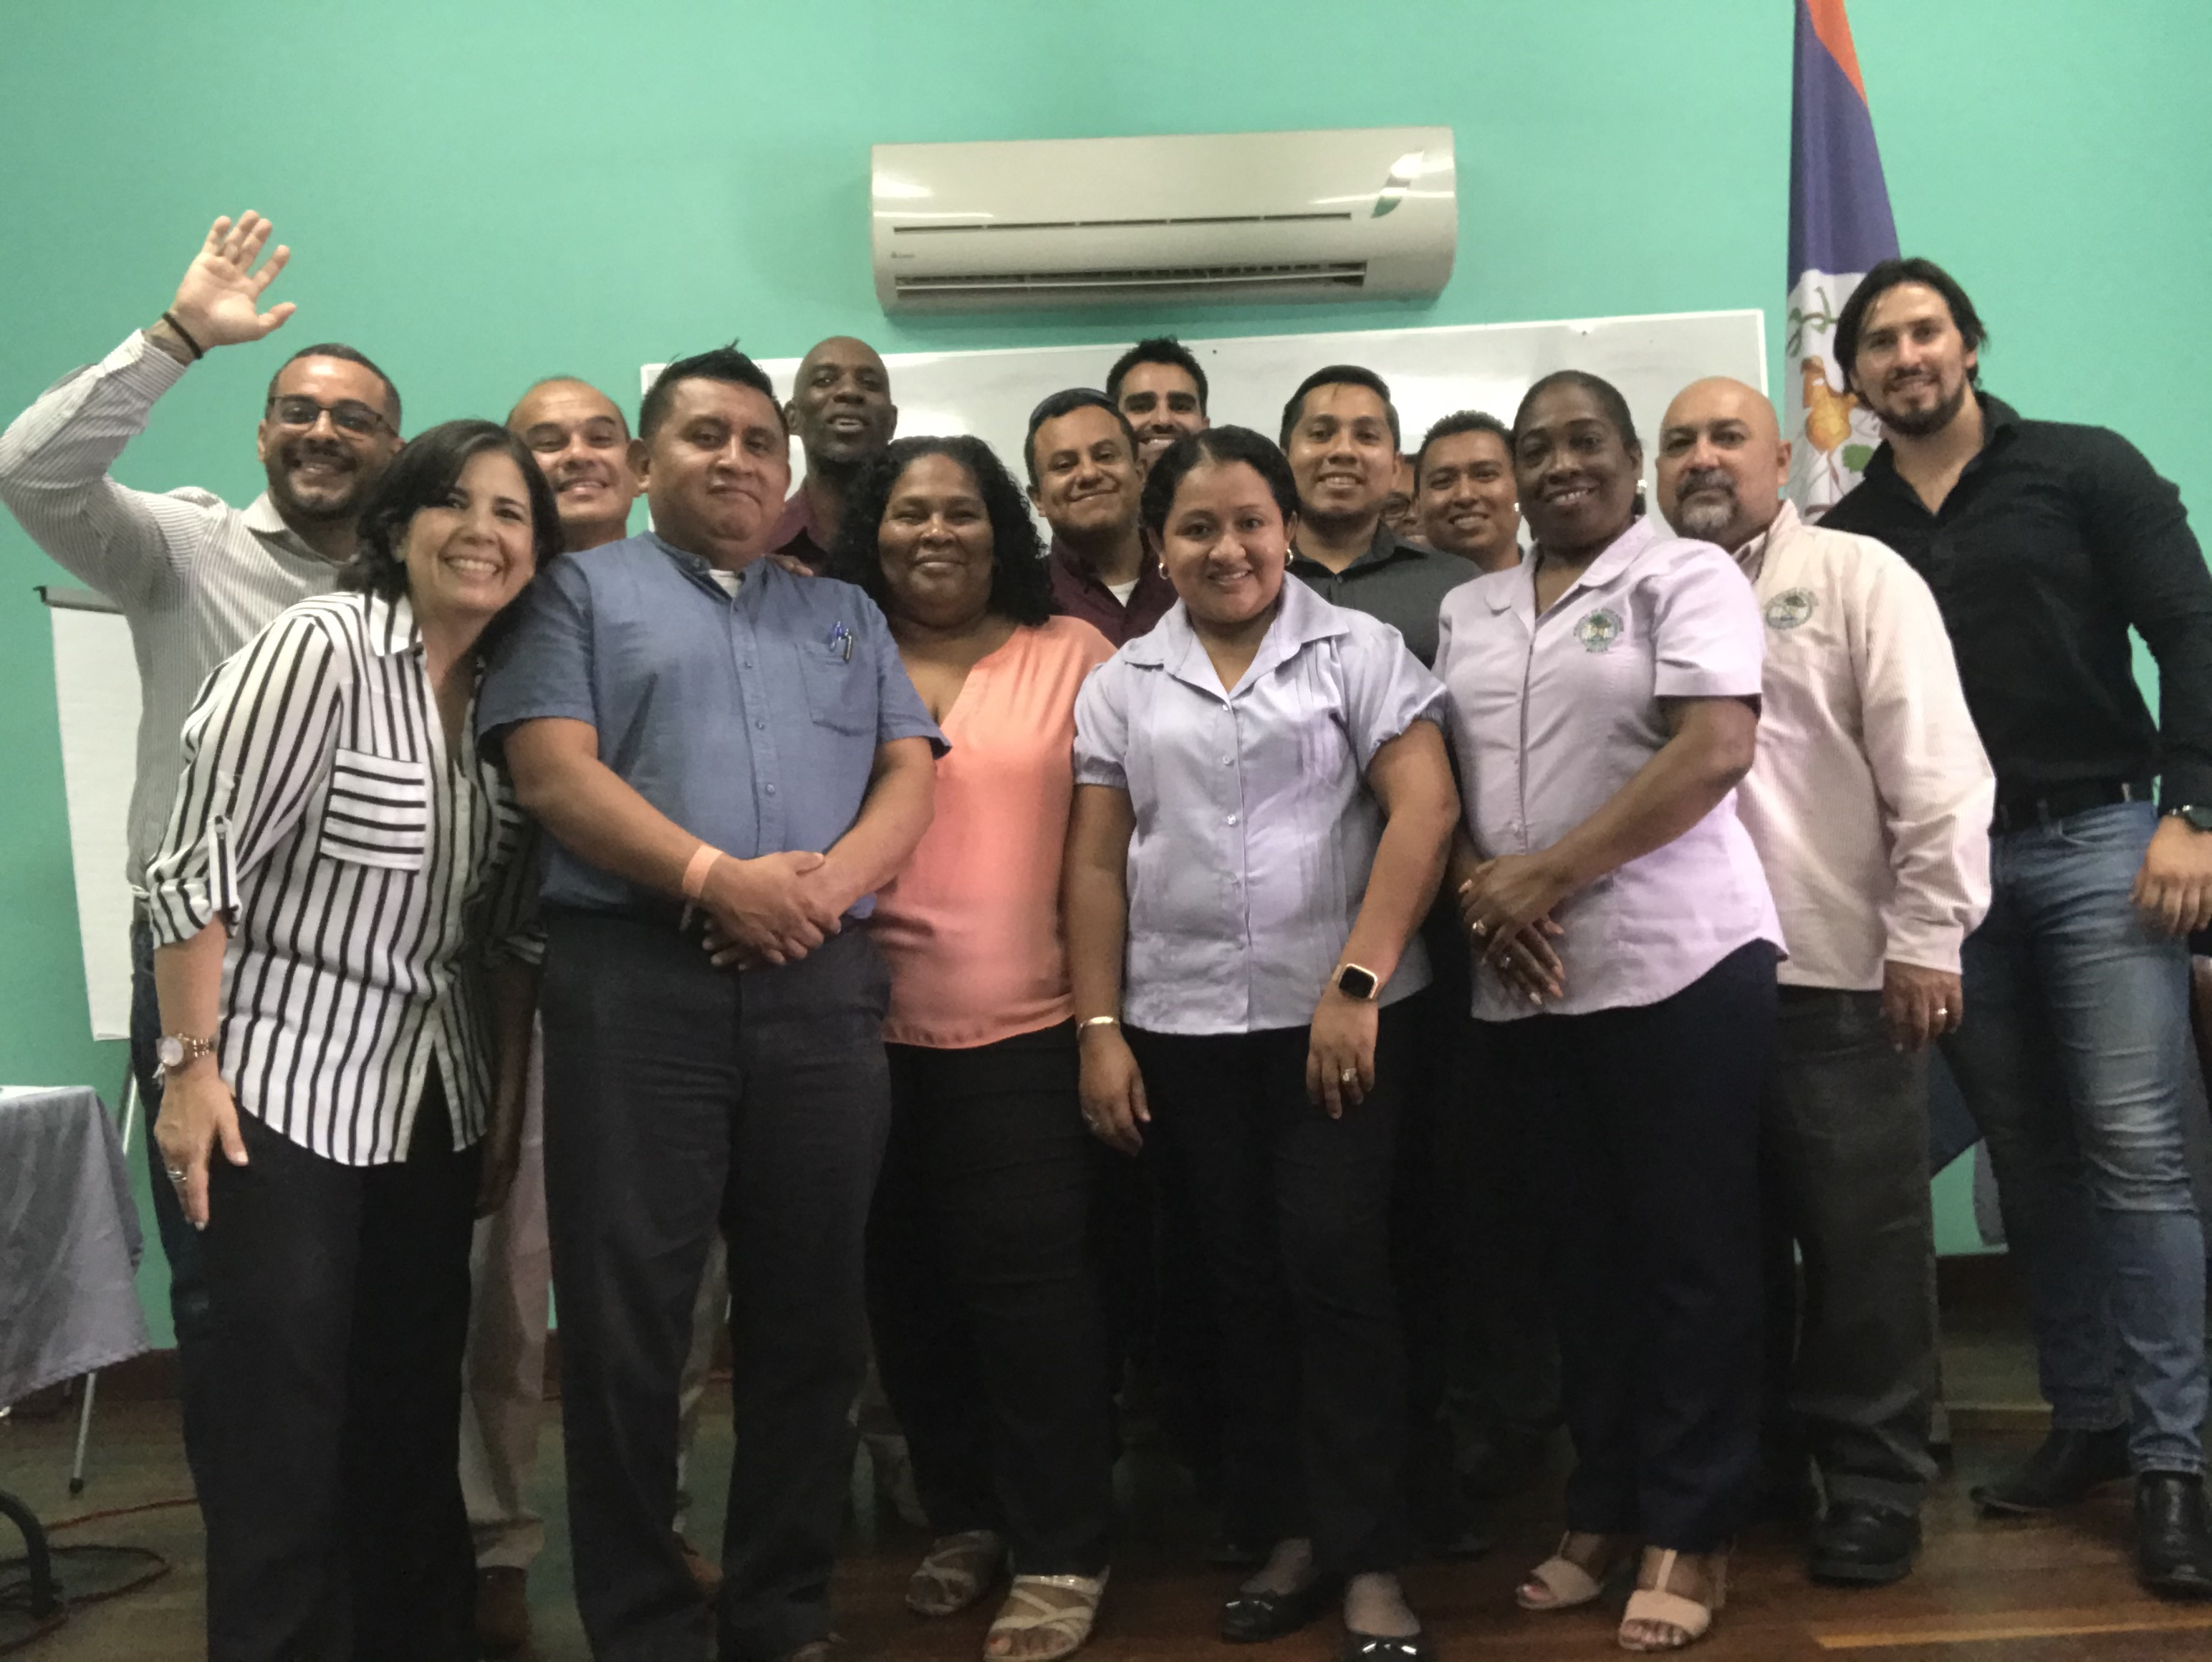 ProFuturo Program Officially Launched in Belize